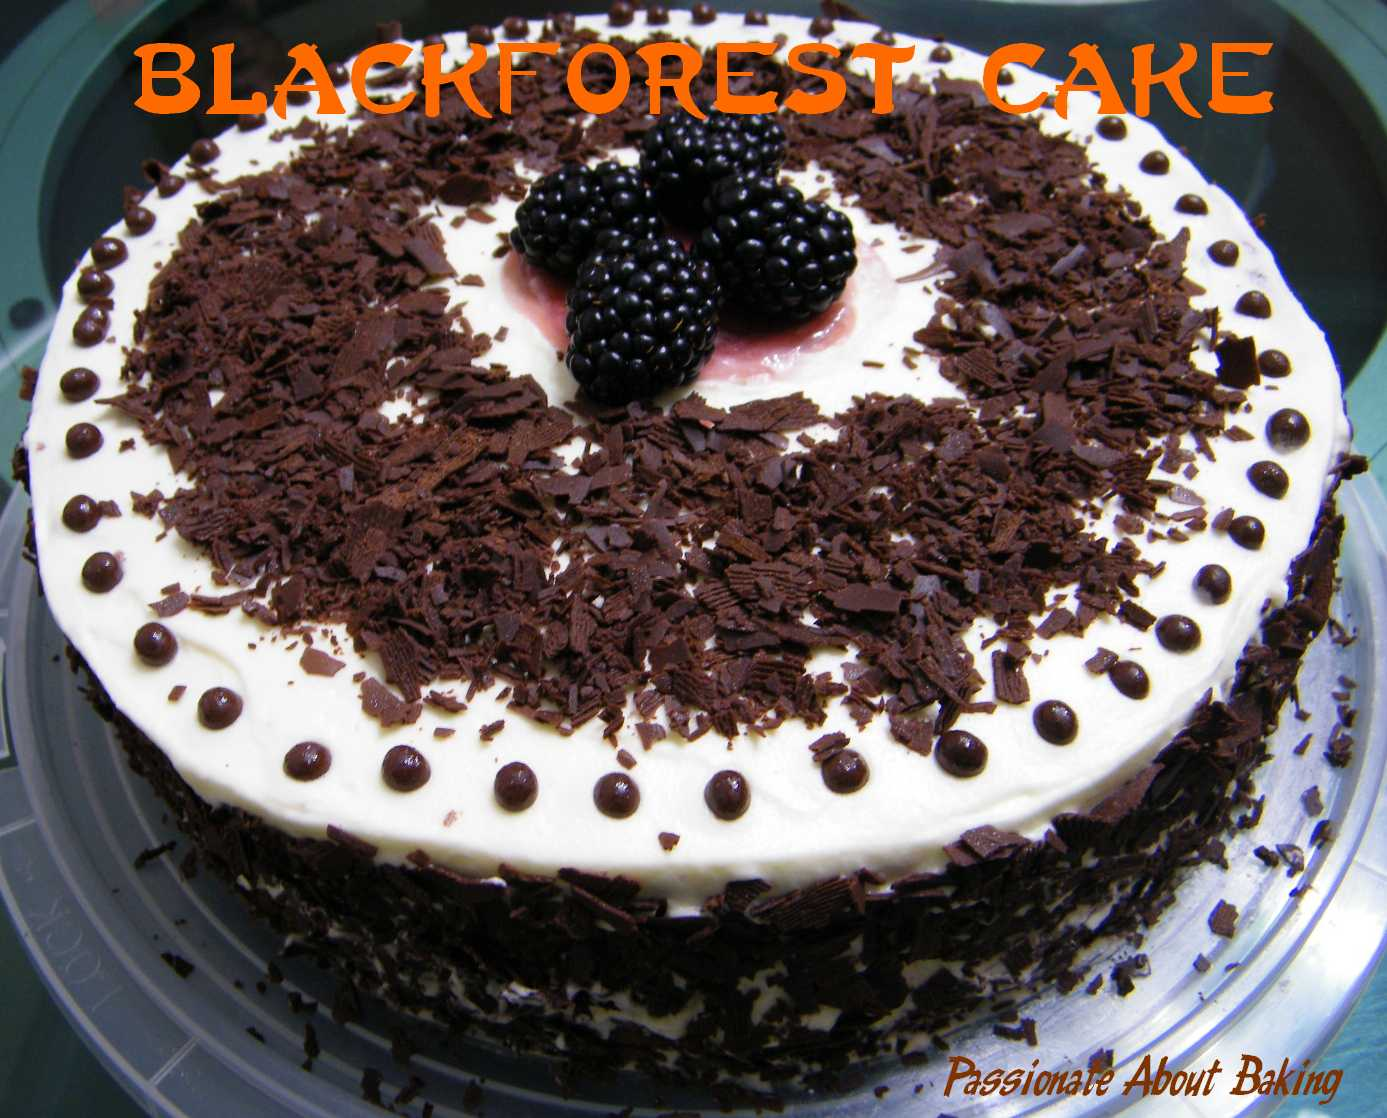 Best Black Forest Cake Images : Blackforest Cake Passionate About Baking